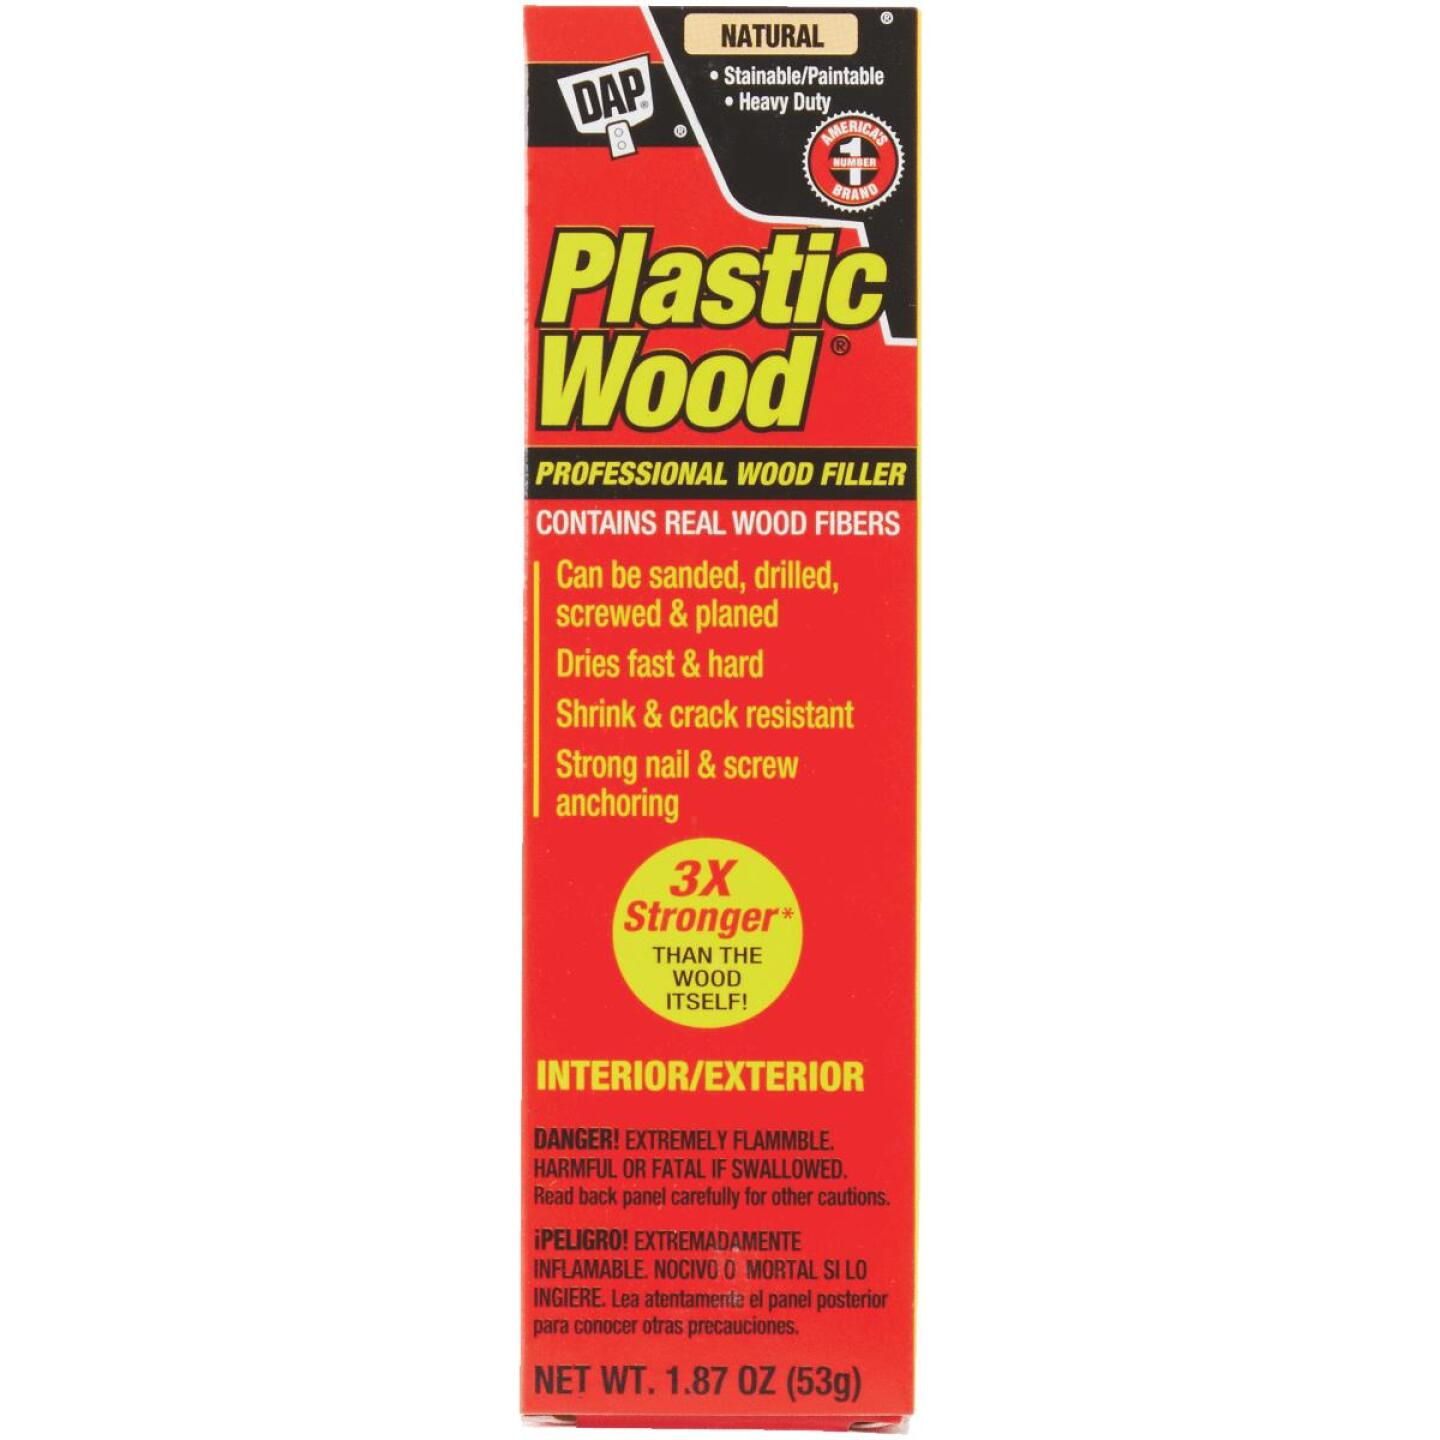 DAP Plastic Wood 1.8 Oz. Natural Solvent Professional Wood Filler Image 2